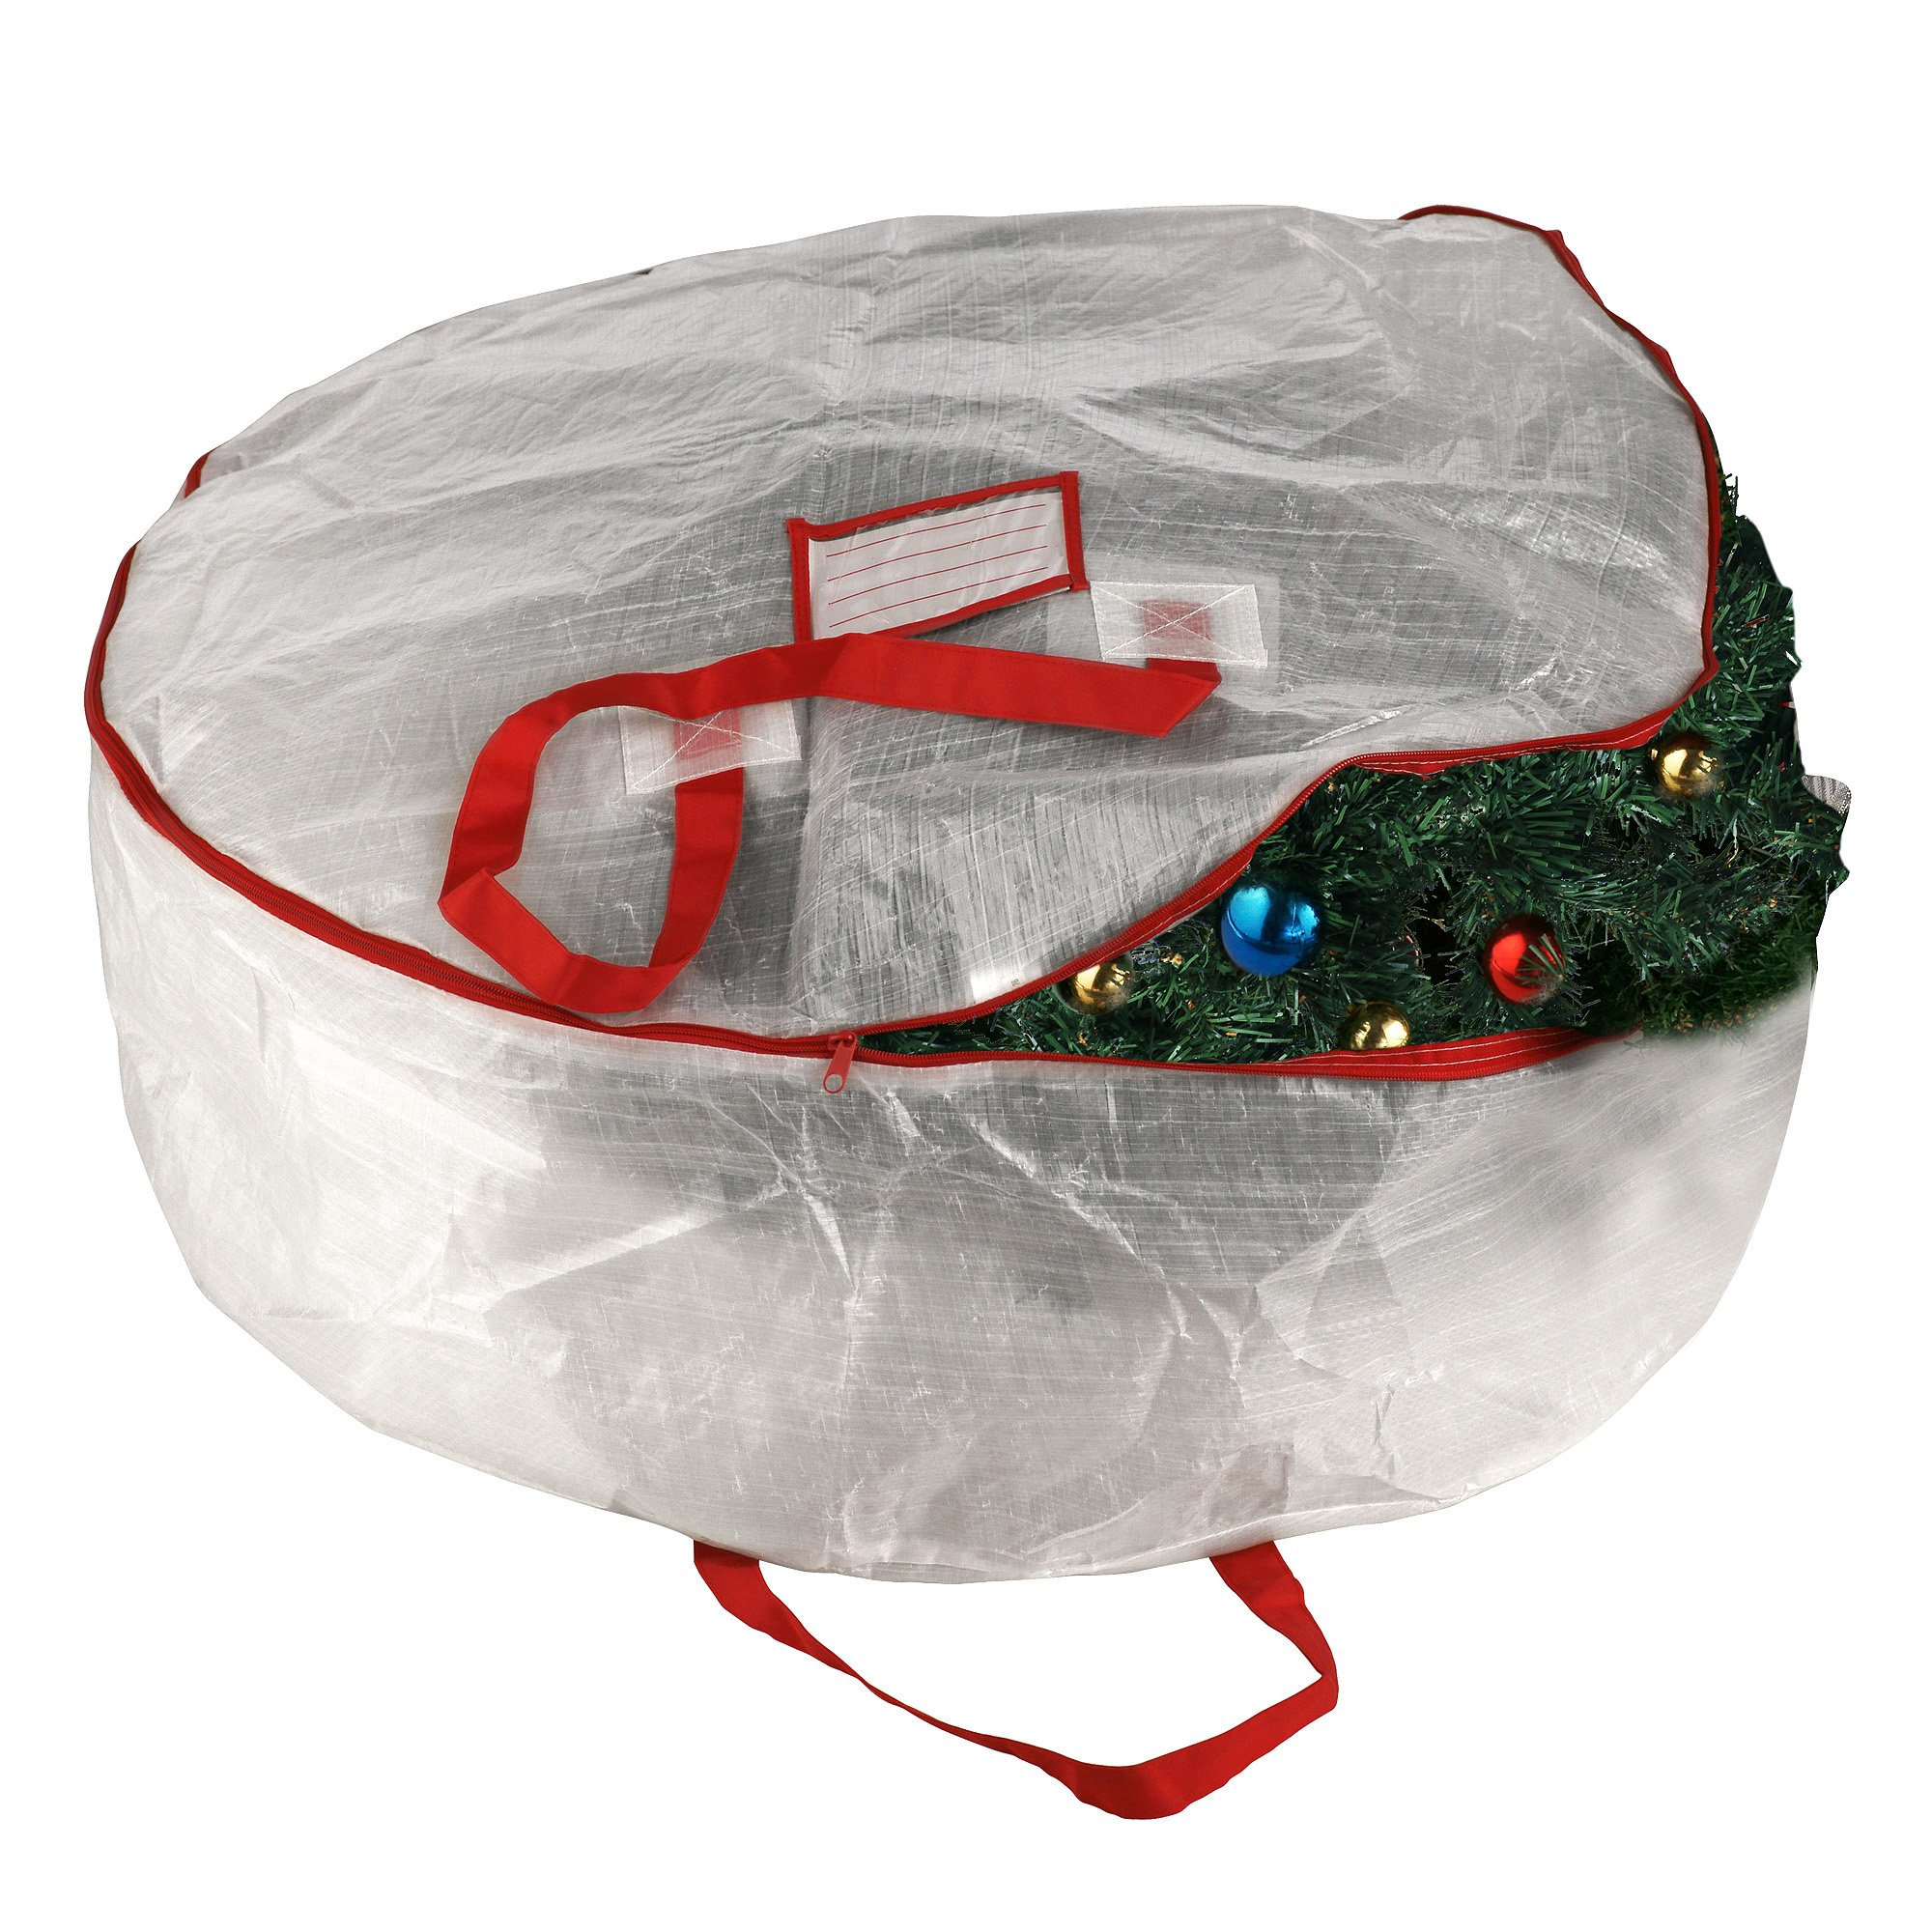 Elf Stor Deluxe White Holiday Christmas Wreath Storage Bag For 30'' Wreaths (30'' x 10'')